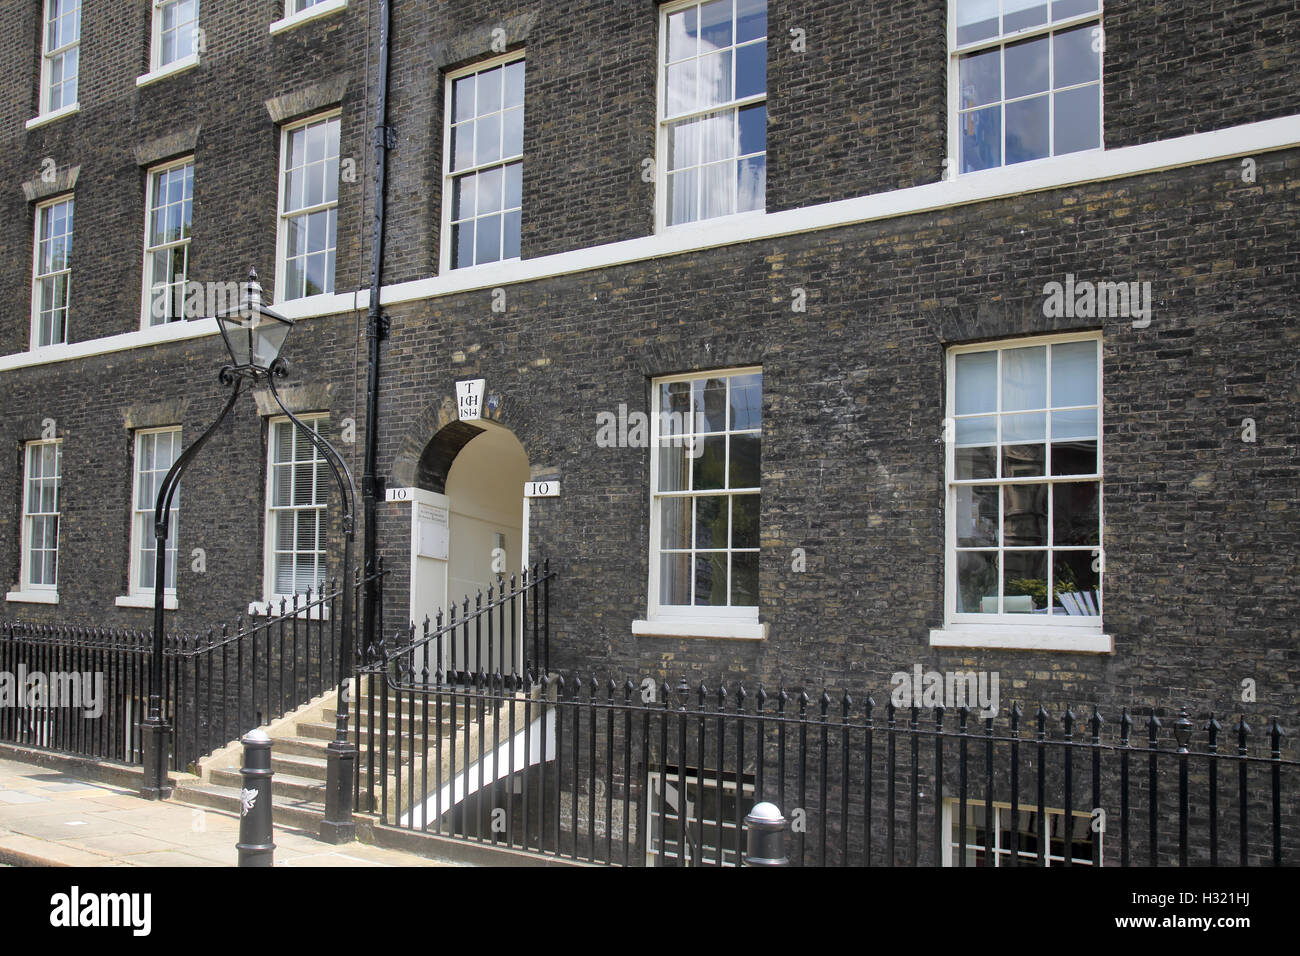 inns of court inner and middle temple london - Stock Image